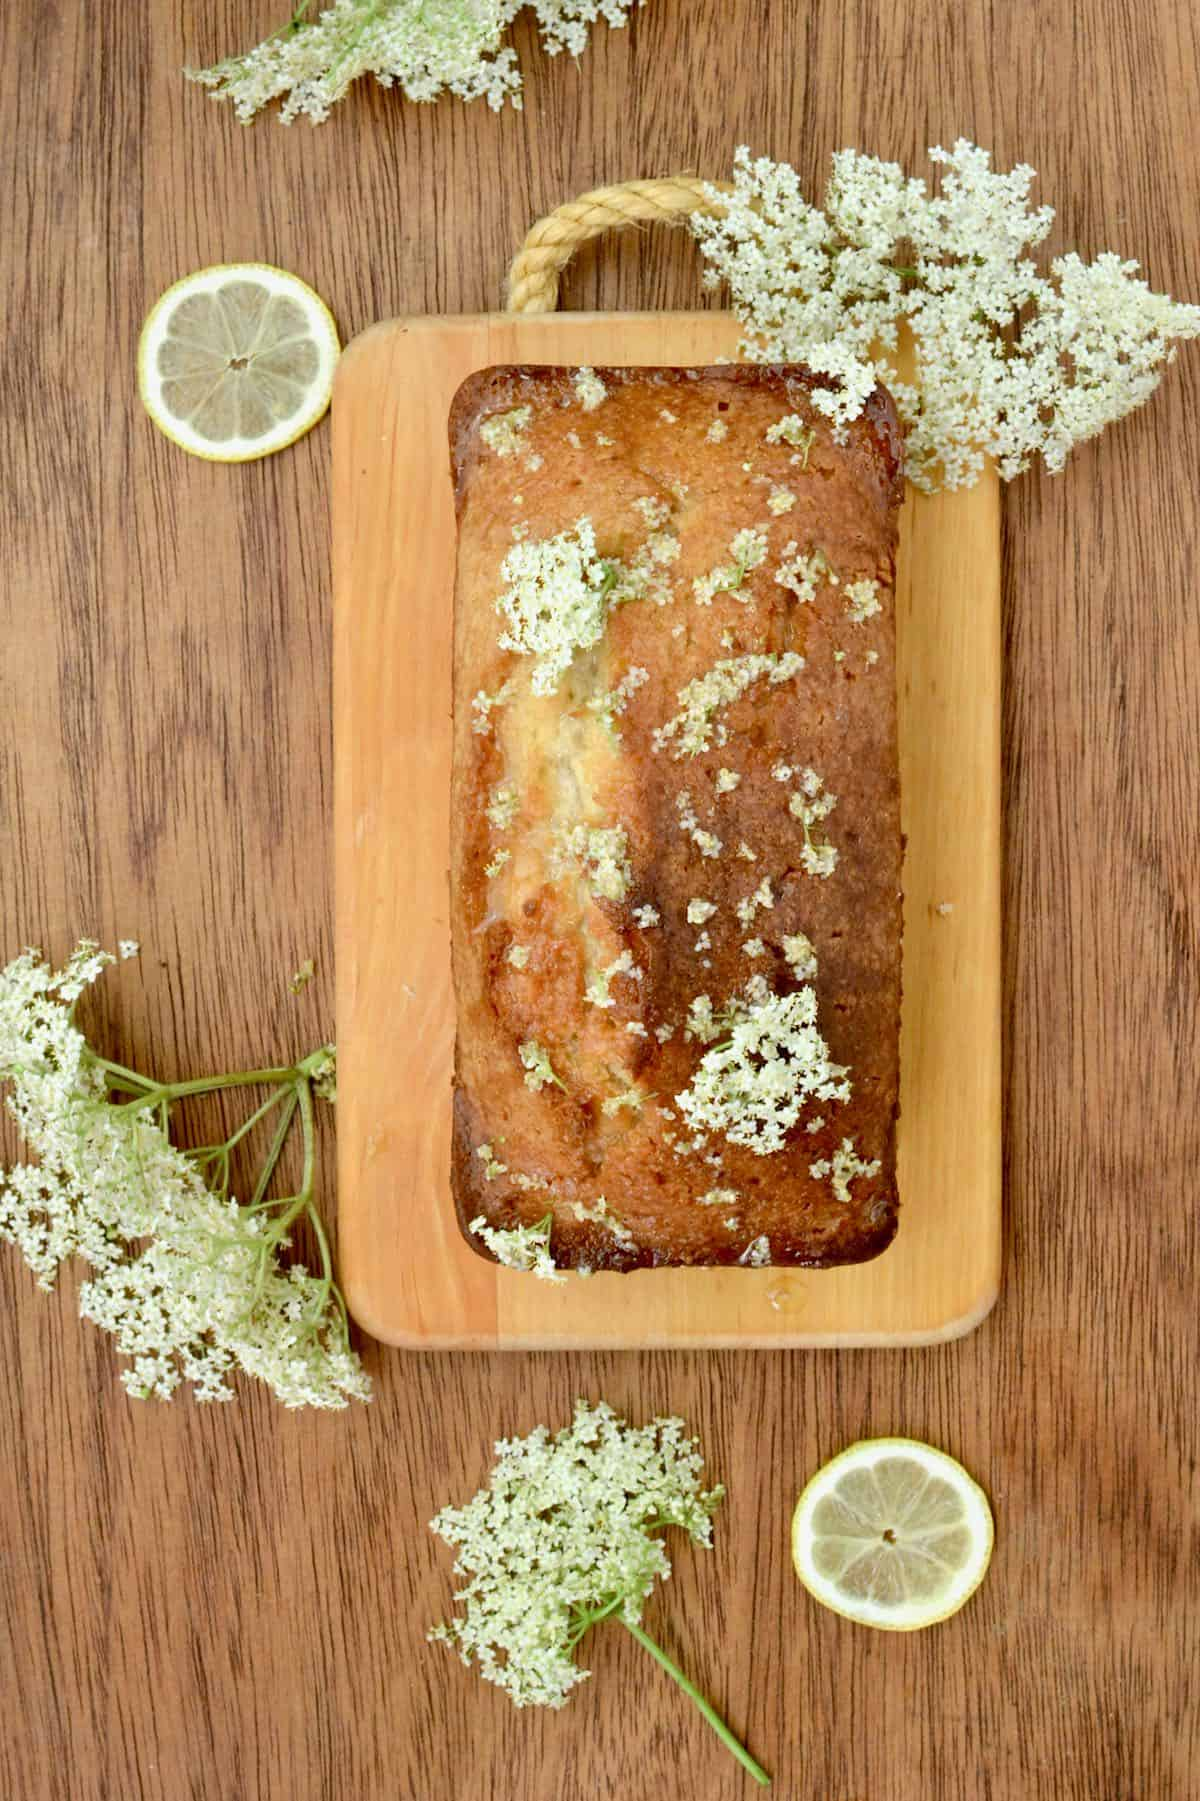 A vegan loaf cake on a wooden board surrounded by fresh elderflowers